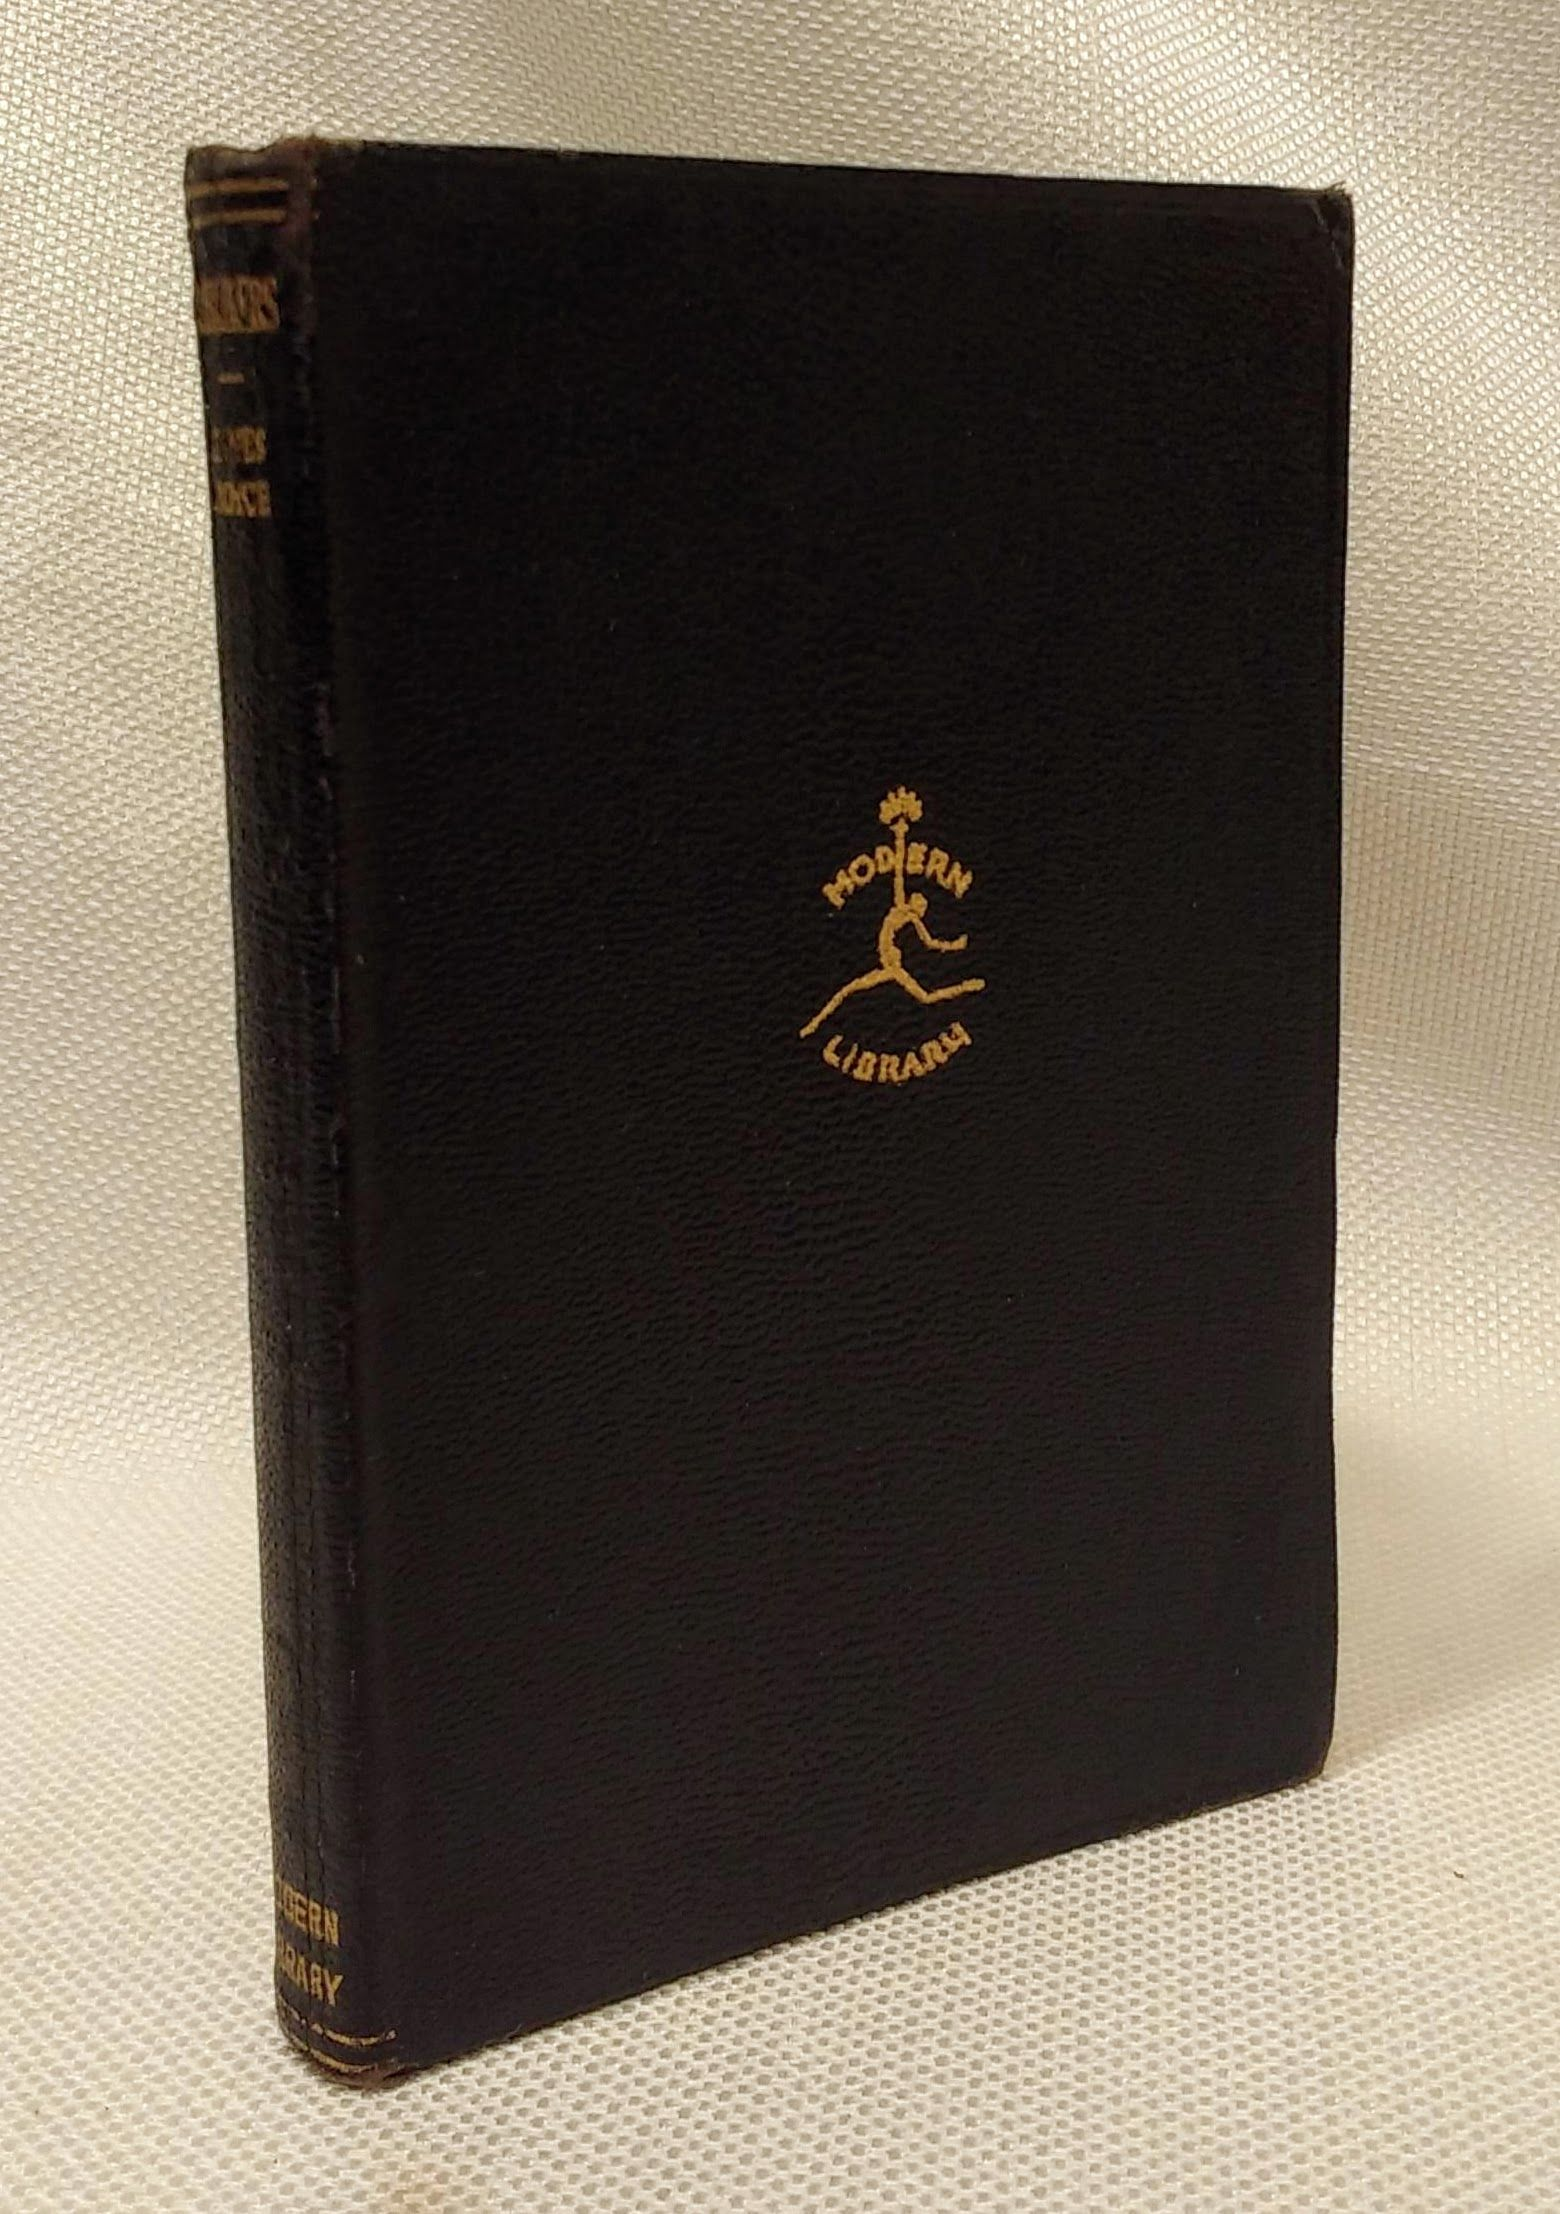 Dubliners [First Modern Library edition, 1926], Joyce, James Introduction by Padriac Column